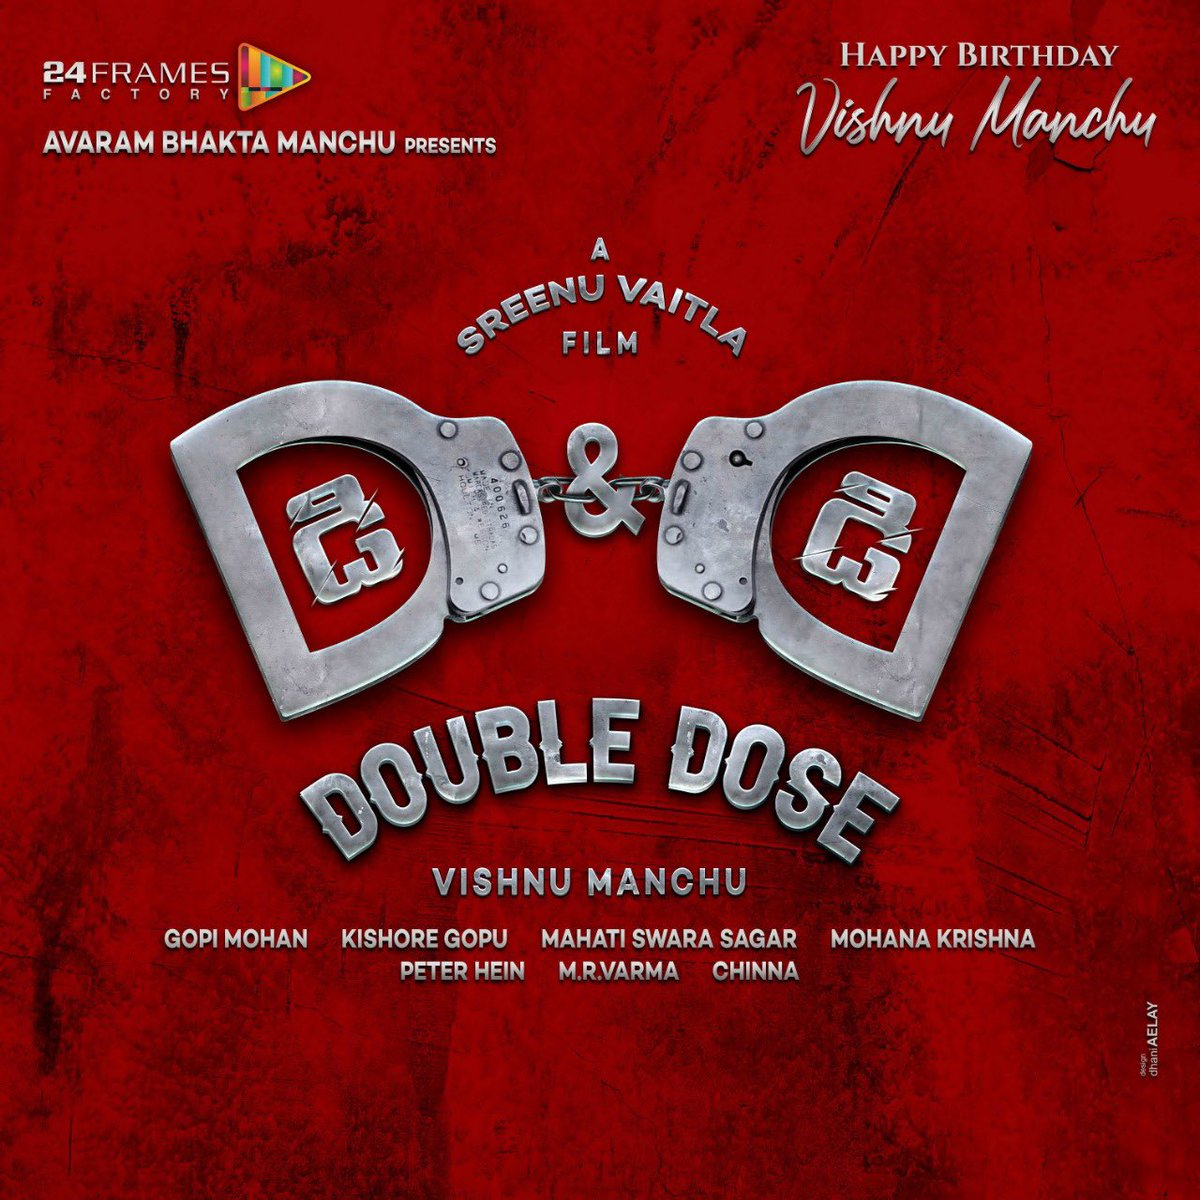 Here we go again! But this time it's D&D Double Dose. Very excited to partner with my big brother Sreenu Vaitla garu again. God speed!   #DD #Doubledose